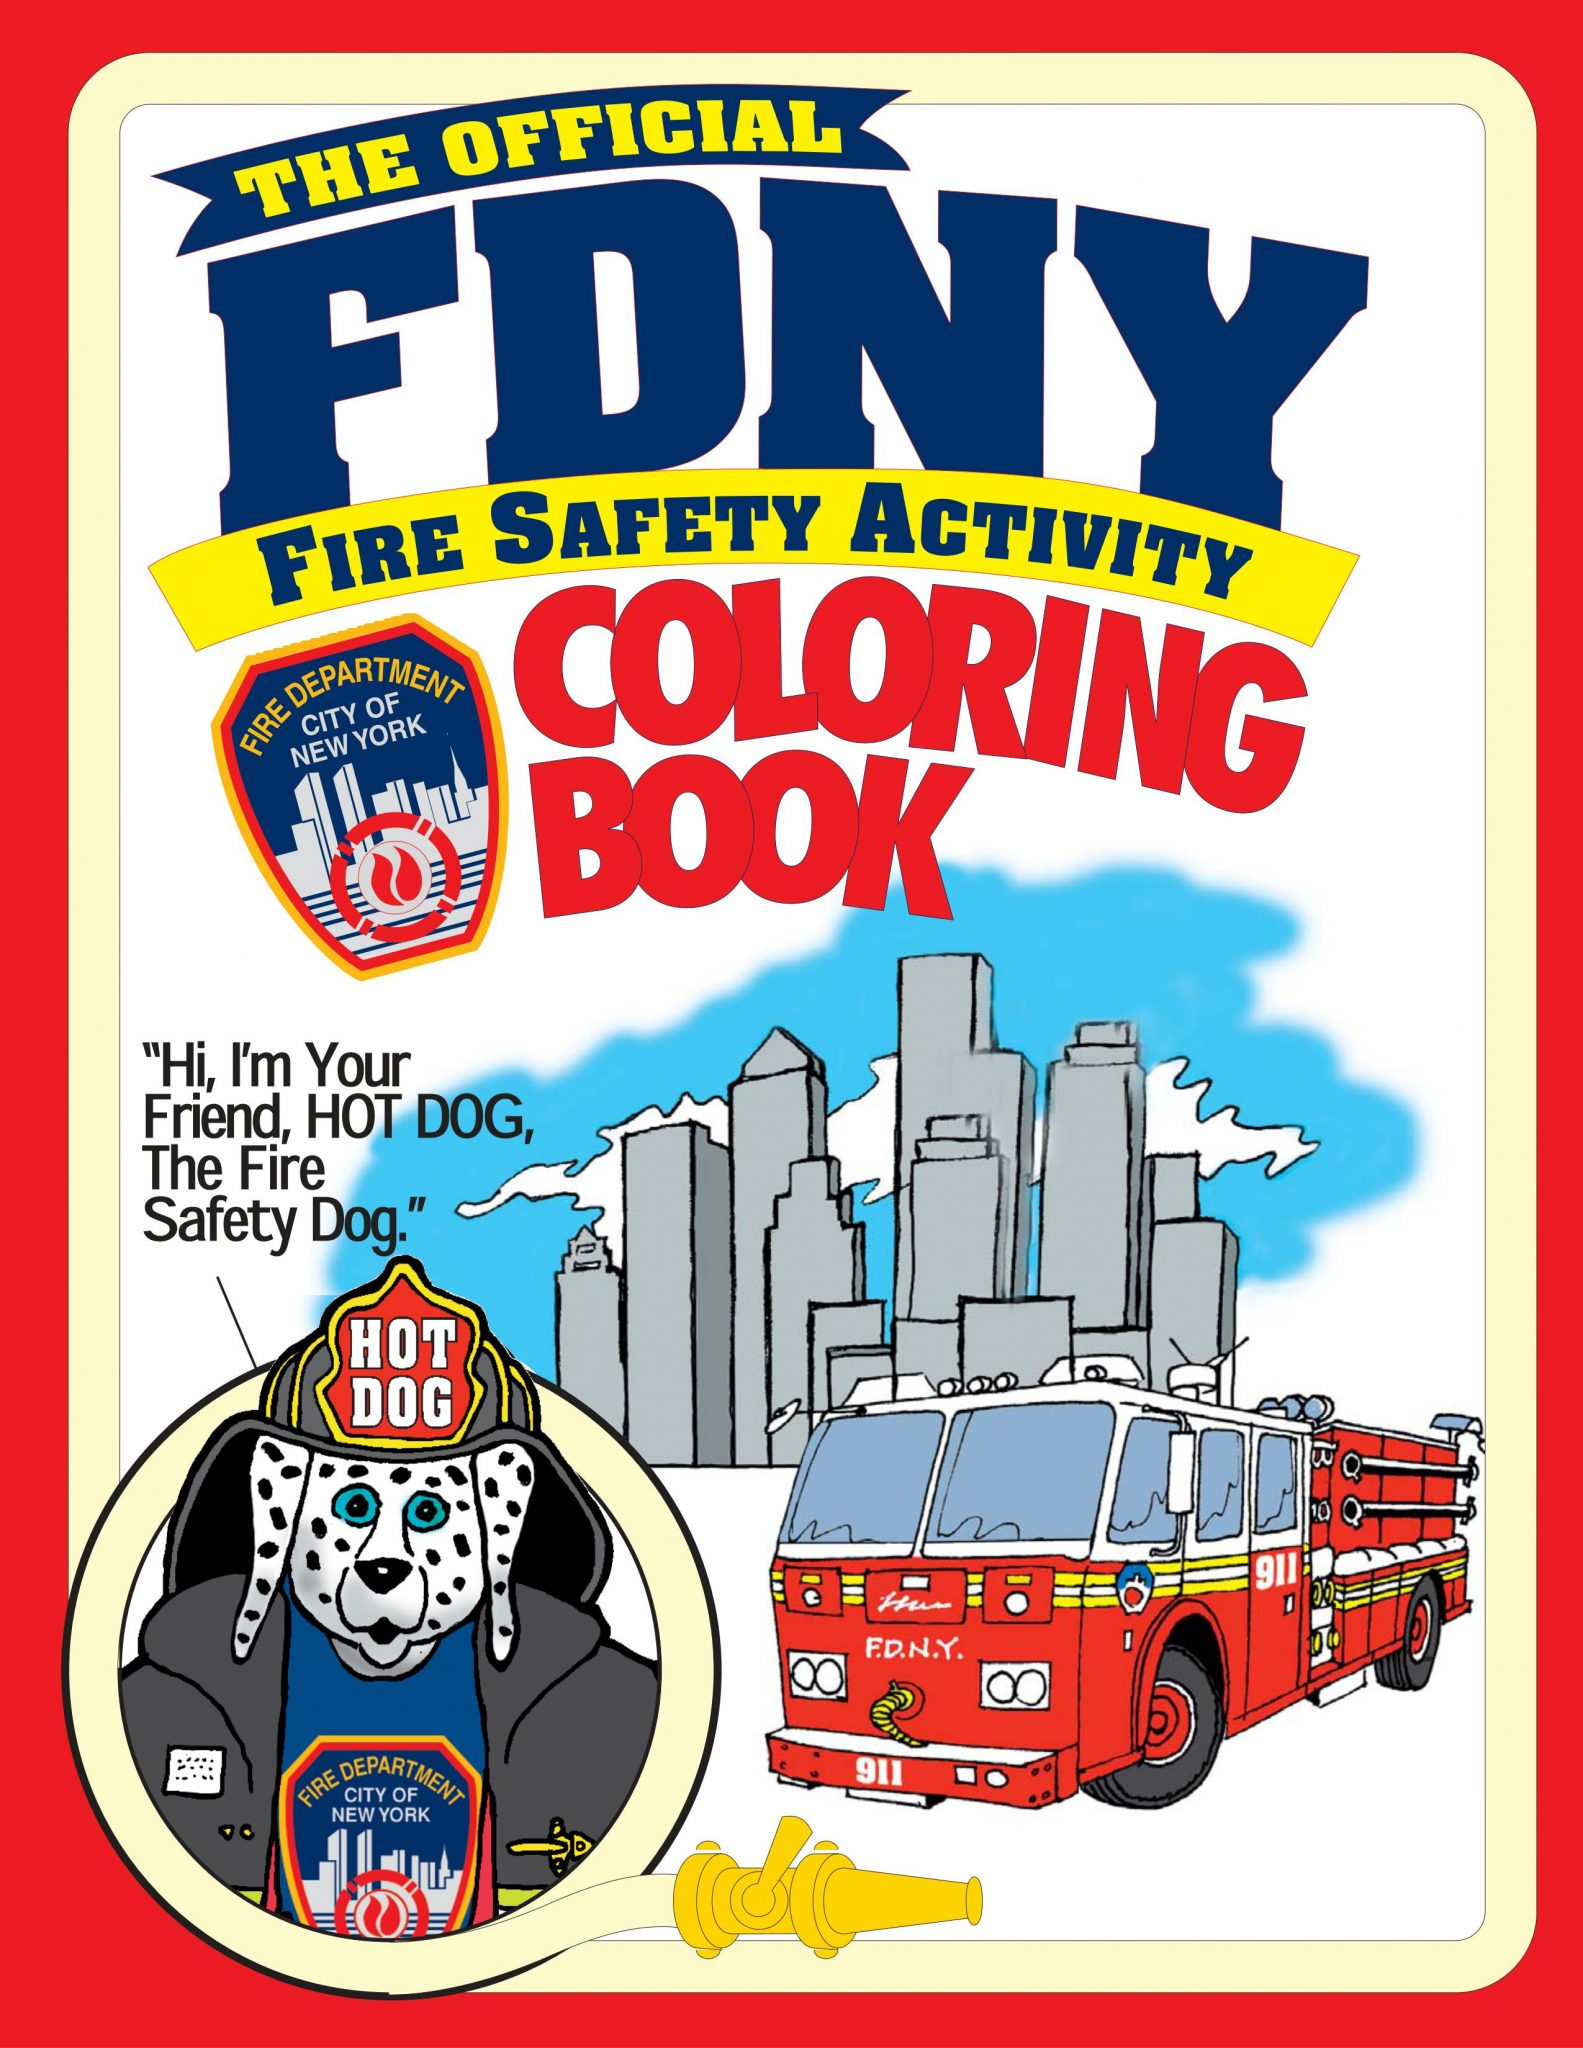 Download The Entire FDNY Coloring And Activity Booklet Here